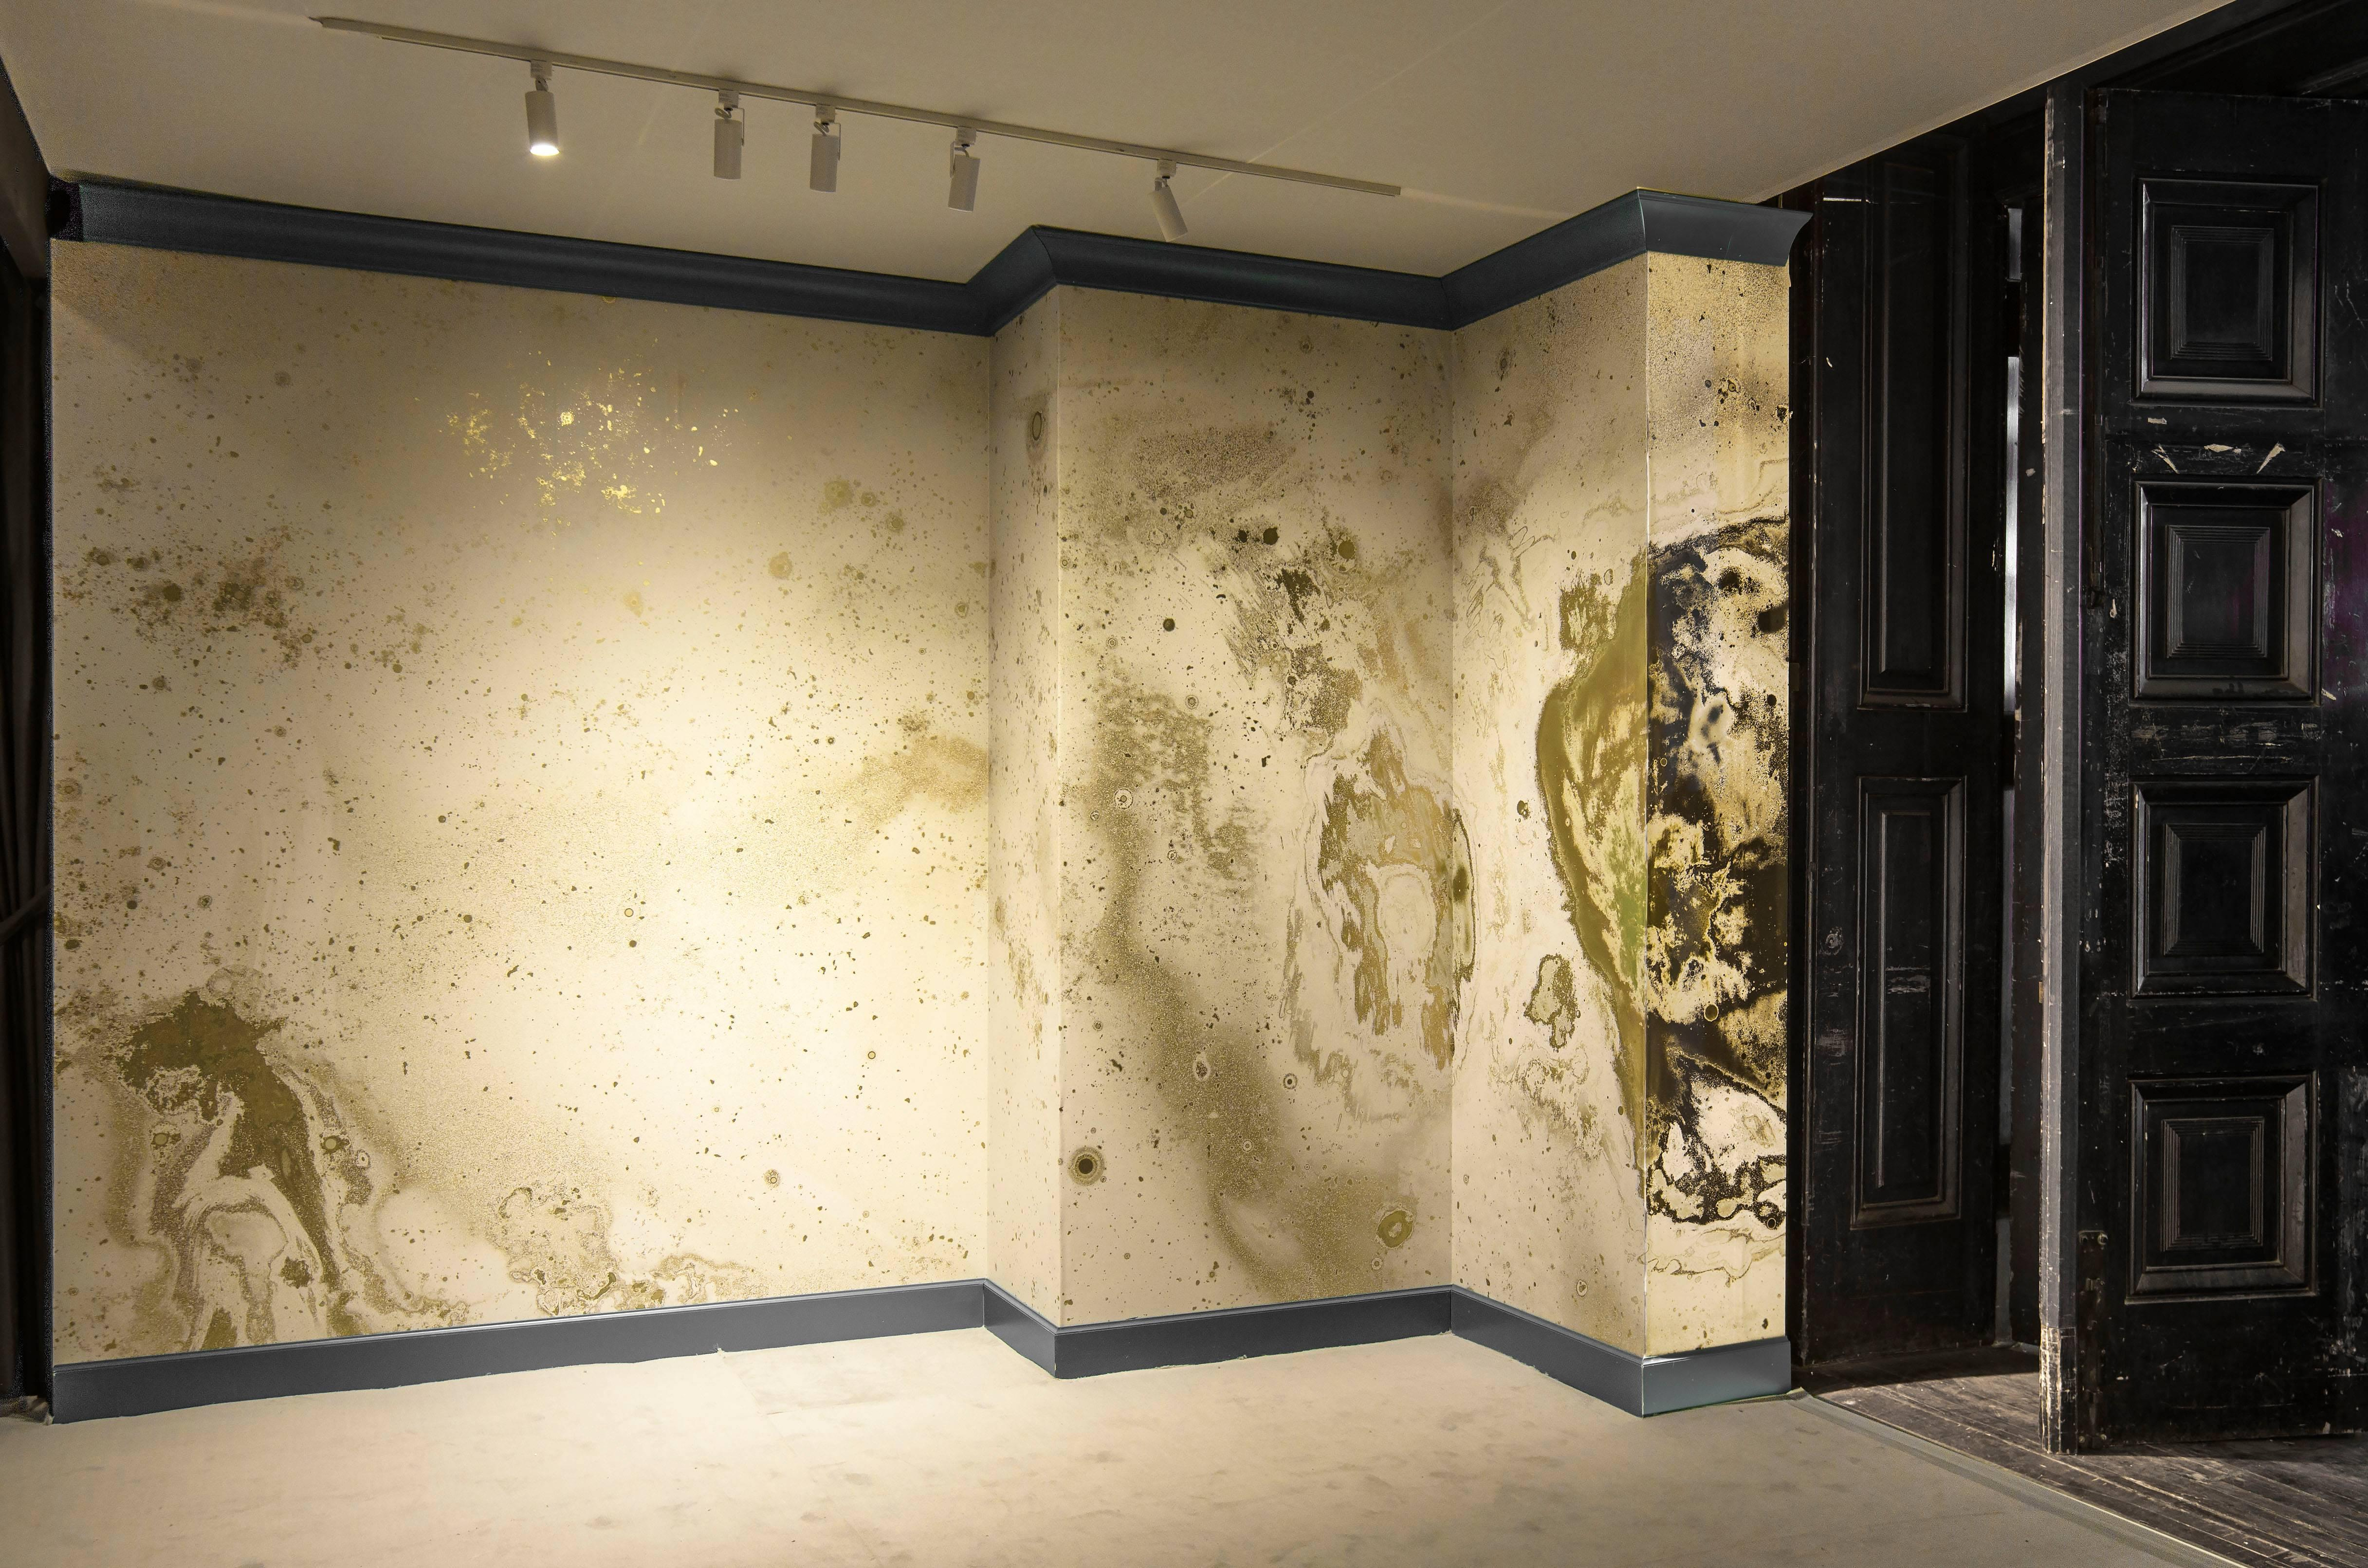 Inverted Spaces Corona Wallpaper or Wall Mural in Gold Metallic For ...